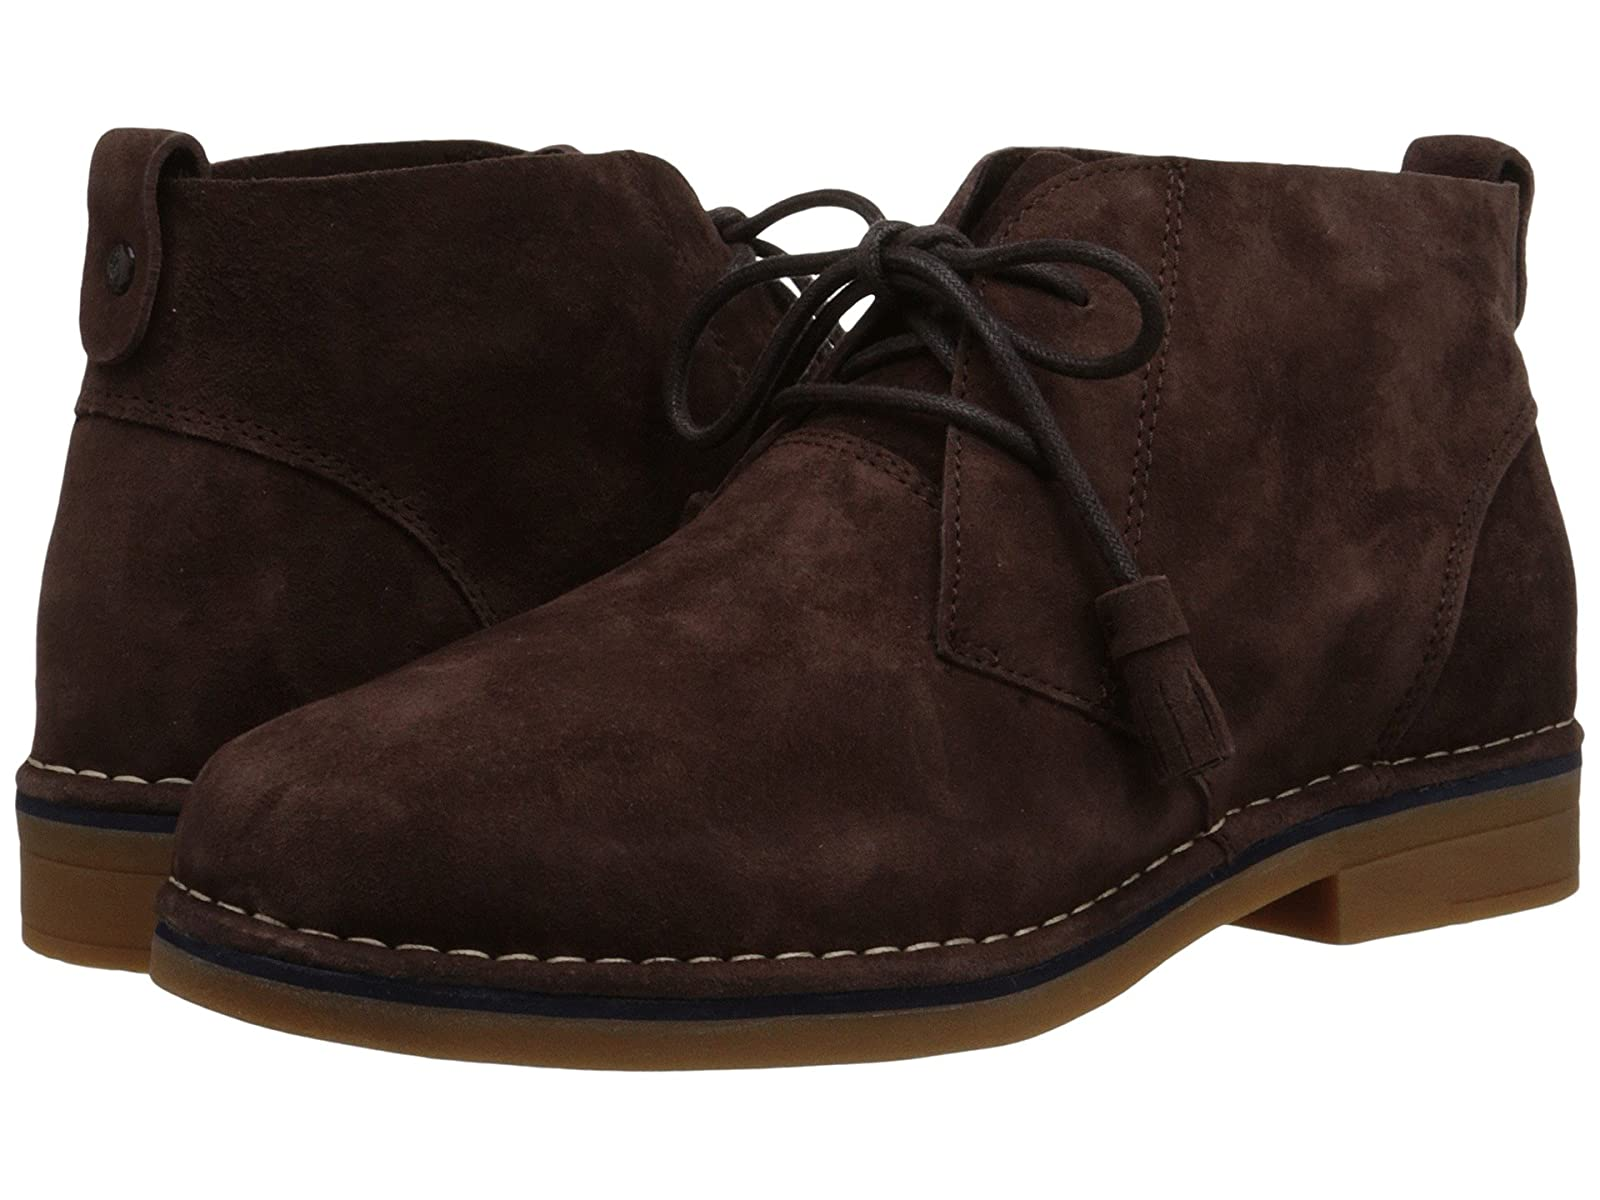 Hush Puppies Cyra CatelynAffordable and distinctive shoes